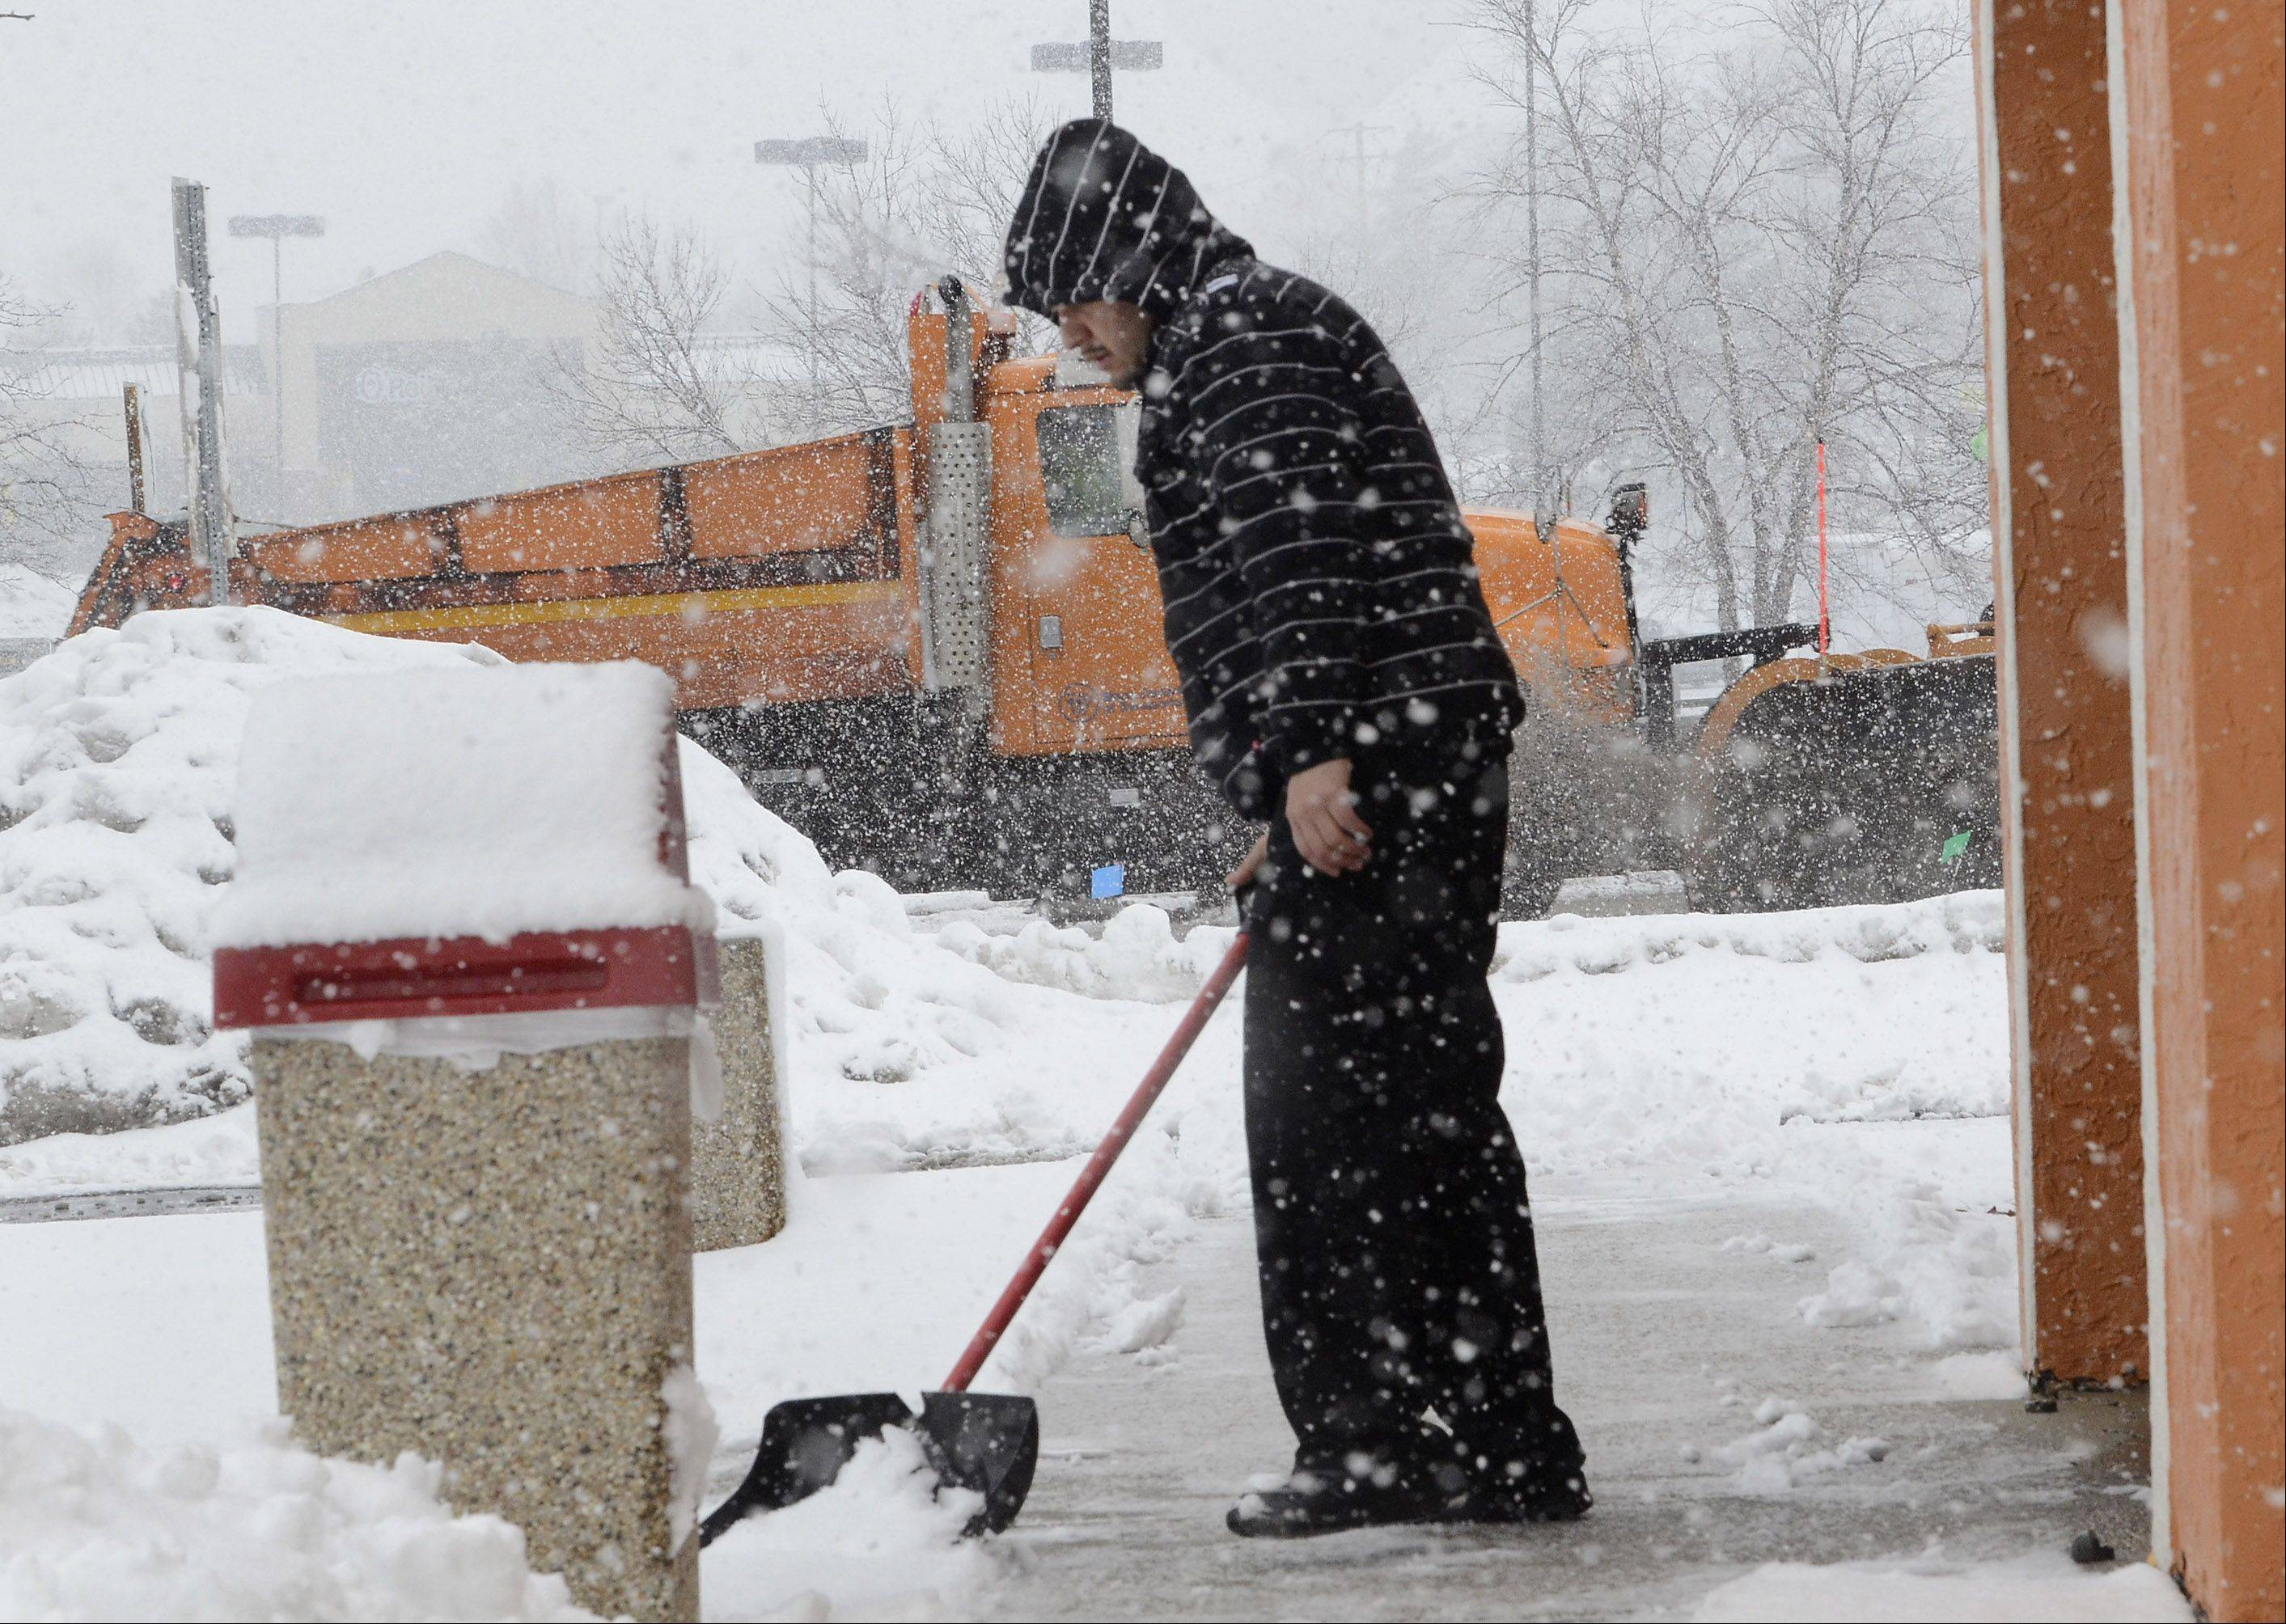 Armando Lopez shovels the walk in front of the Taco Bell in Lake Zurich, as a snowplow drives by on Rt. 22.